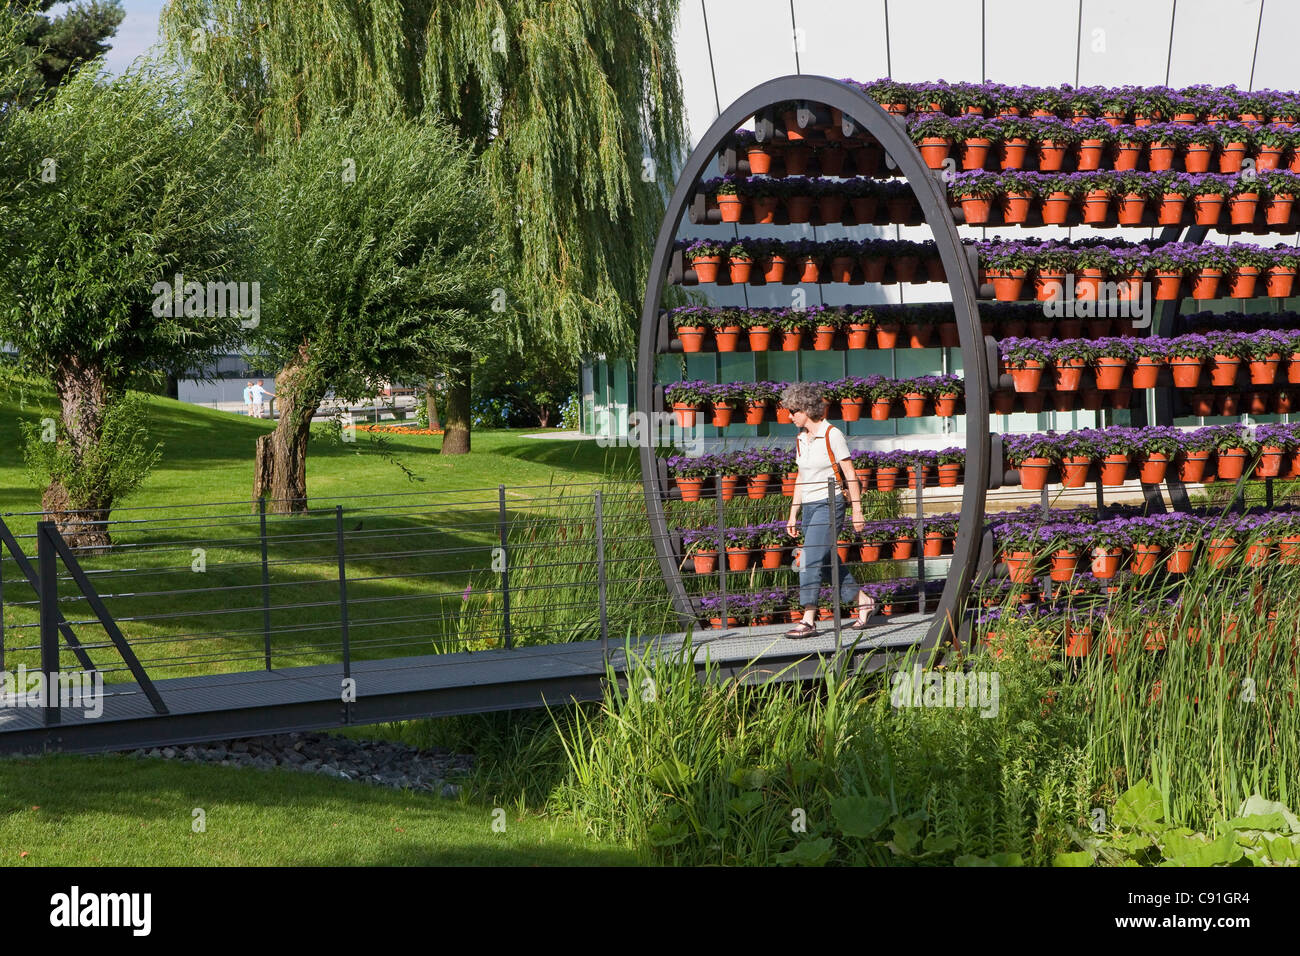 Scent Tunnel in the park of Volkswagen Autostadt, Wolfsburg, Lower saxony, Germany - Stock Image